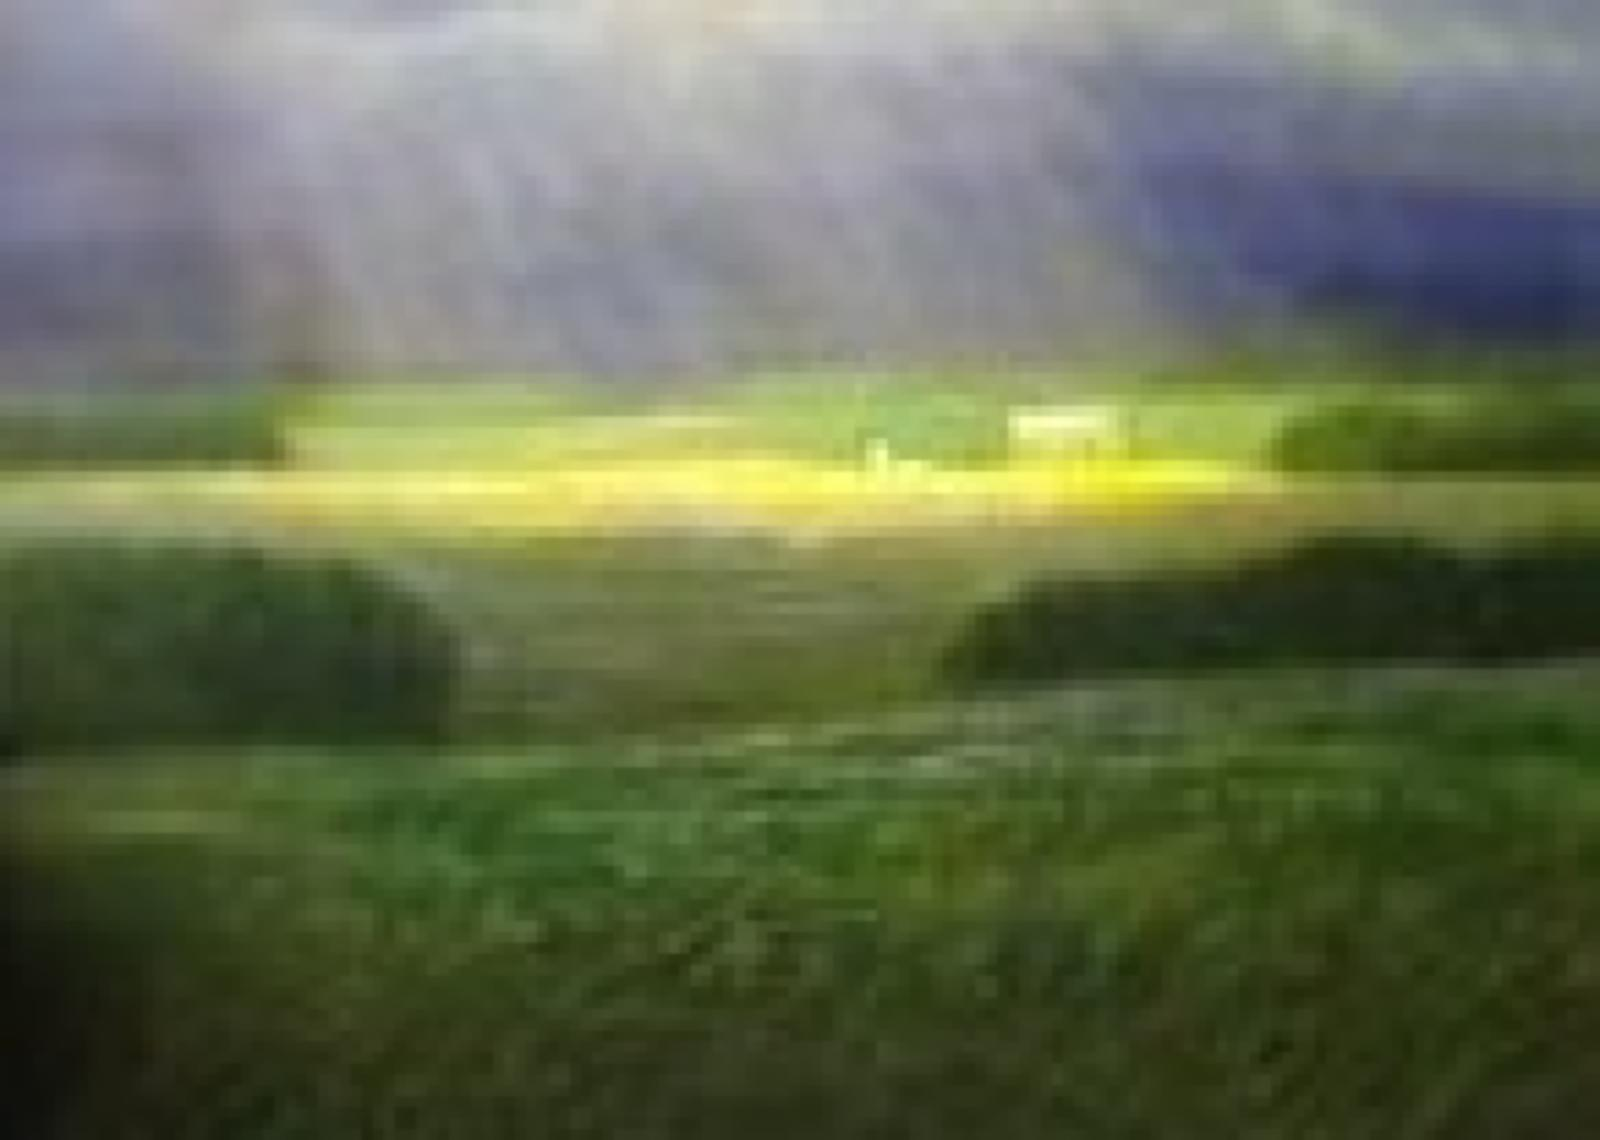 Grass plains with clouded sky showing sunlight through the center.